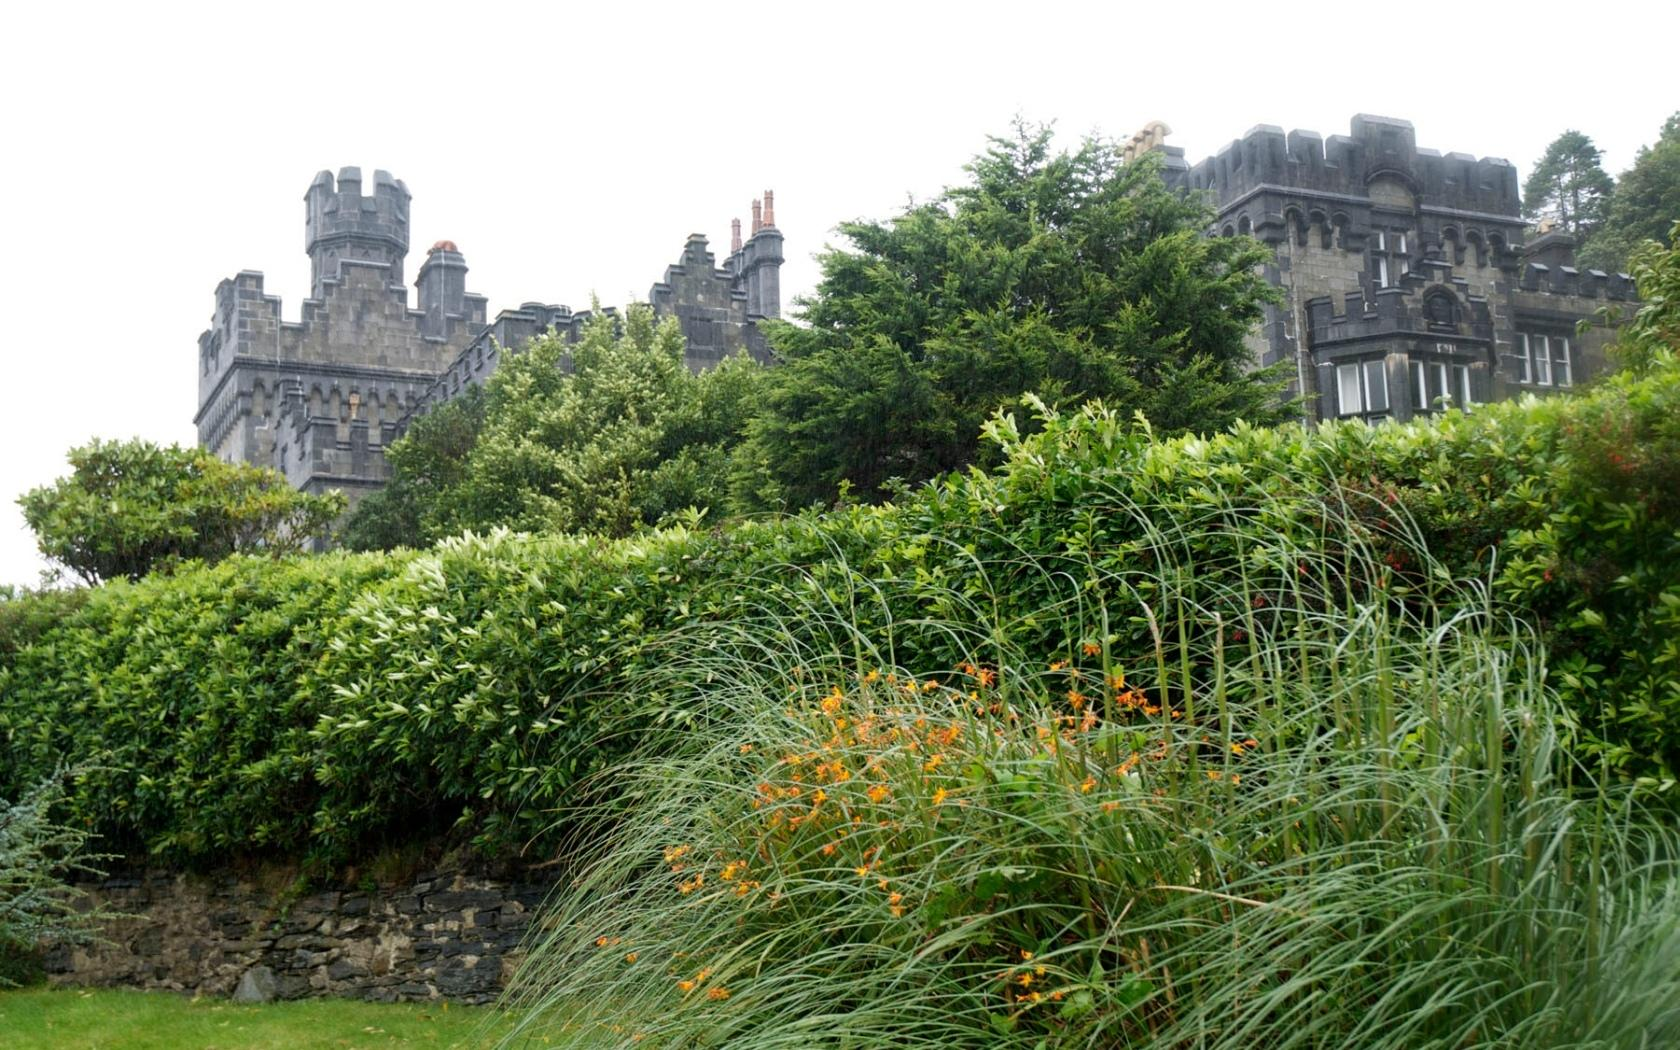 Kylemore Abbey wallpapers HD quality